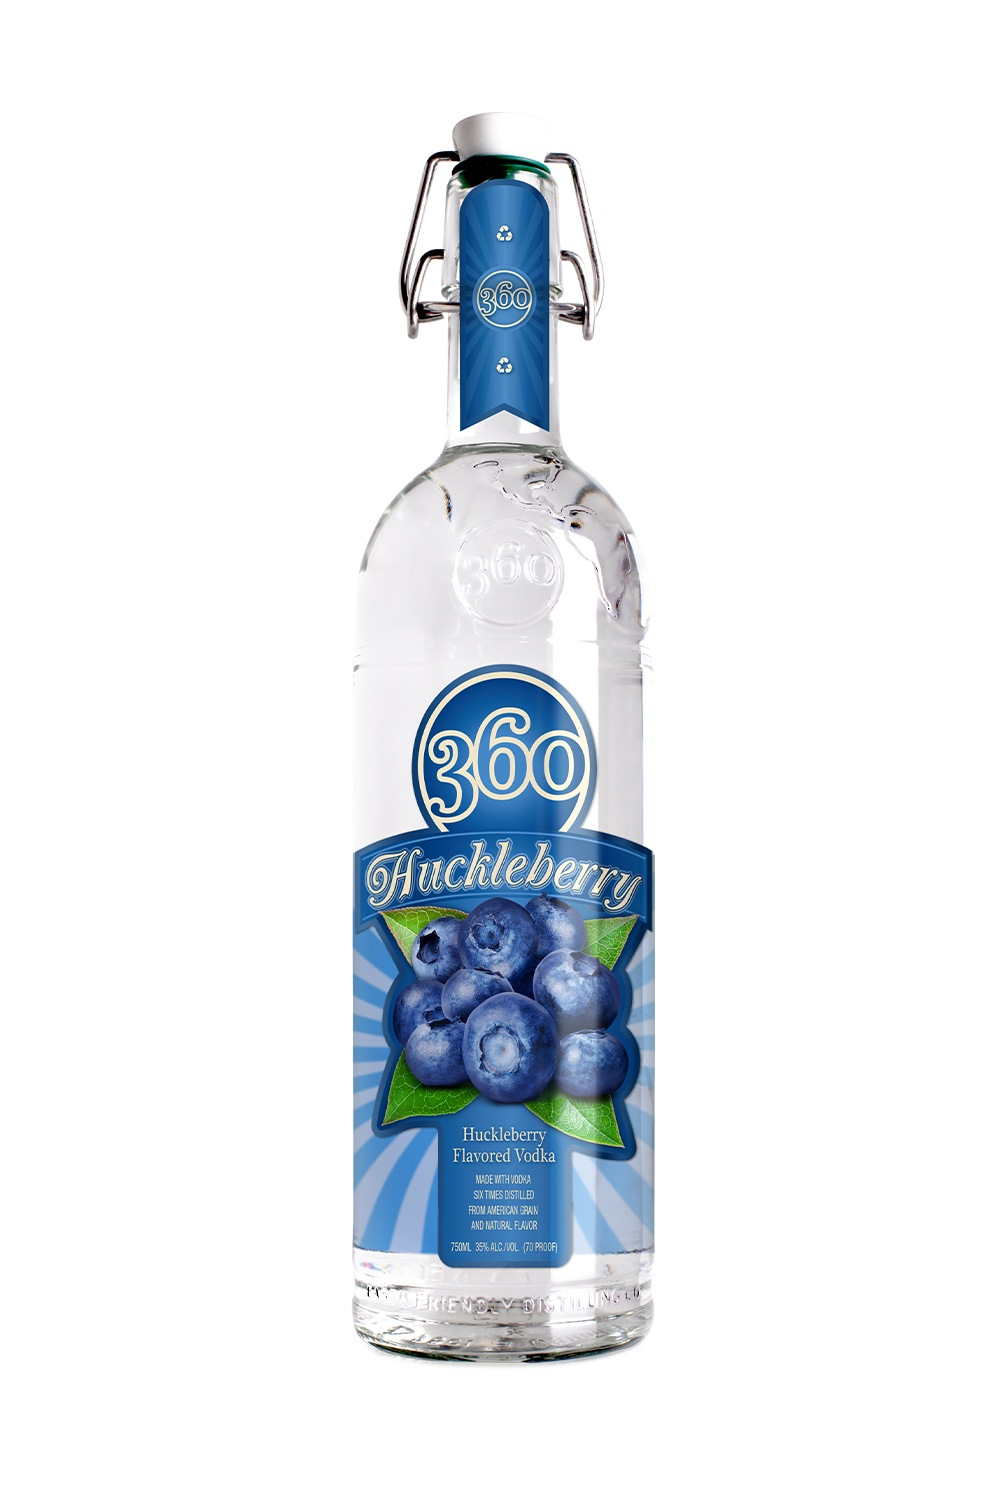 360 Huckleberry Flavored Vodka 360 Eco Friendly Vodka,Victorian House Renovation Before And After Uk